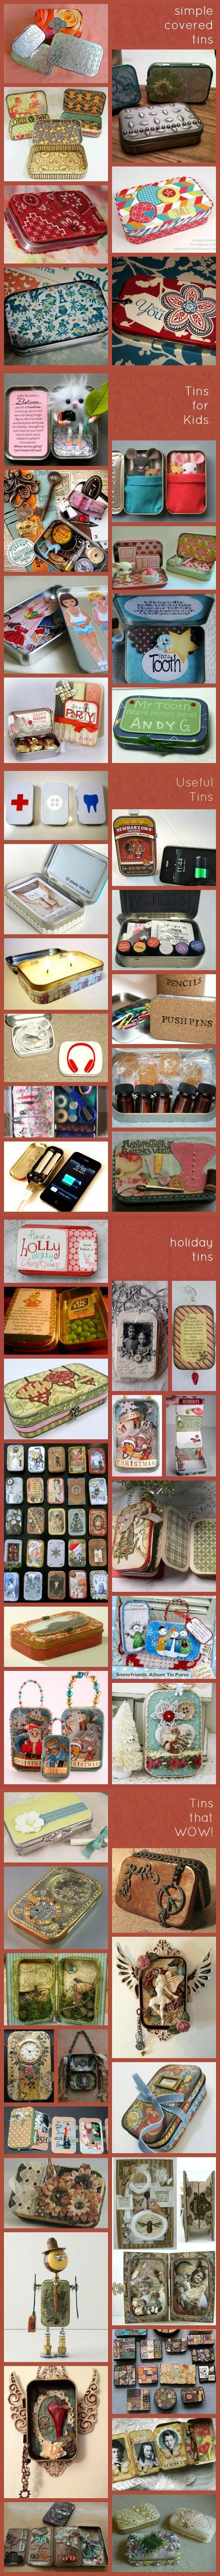 Reuses for Altoid tins - fun little projects :-) #DIY #repurpose                                                                                                                                                     More